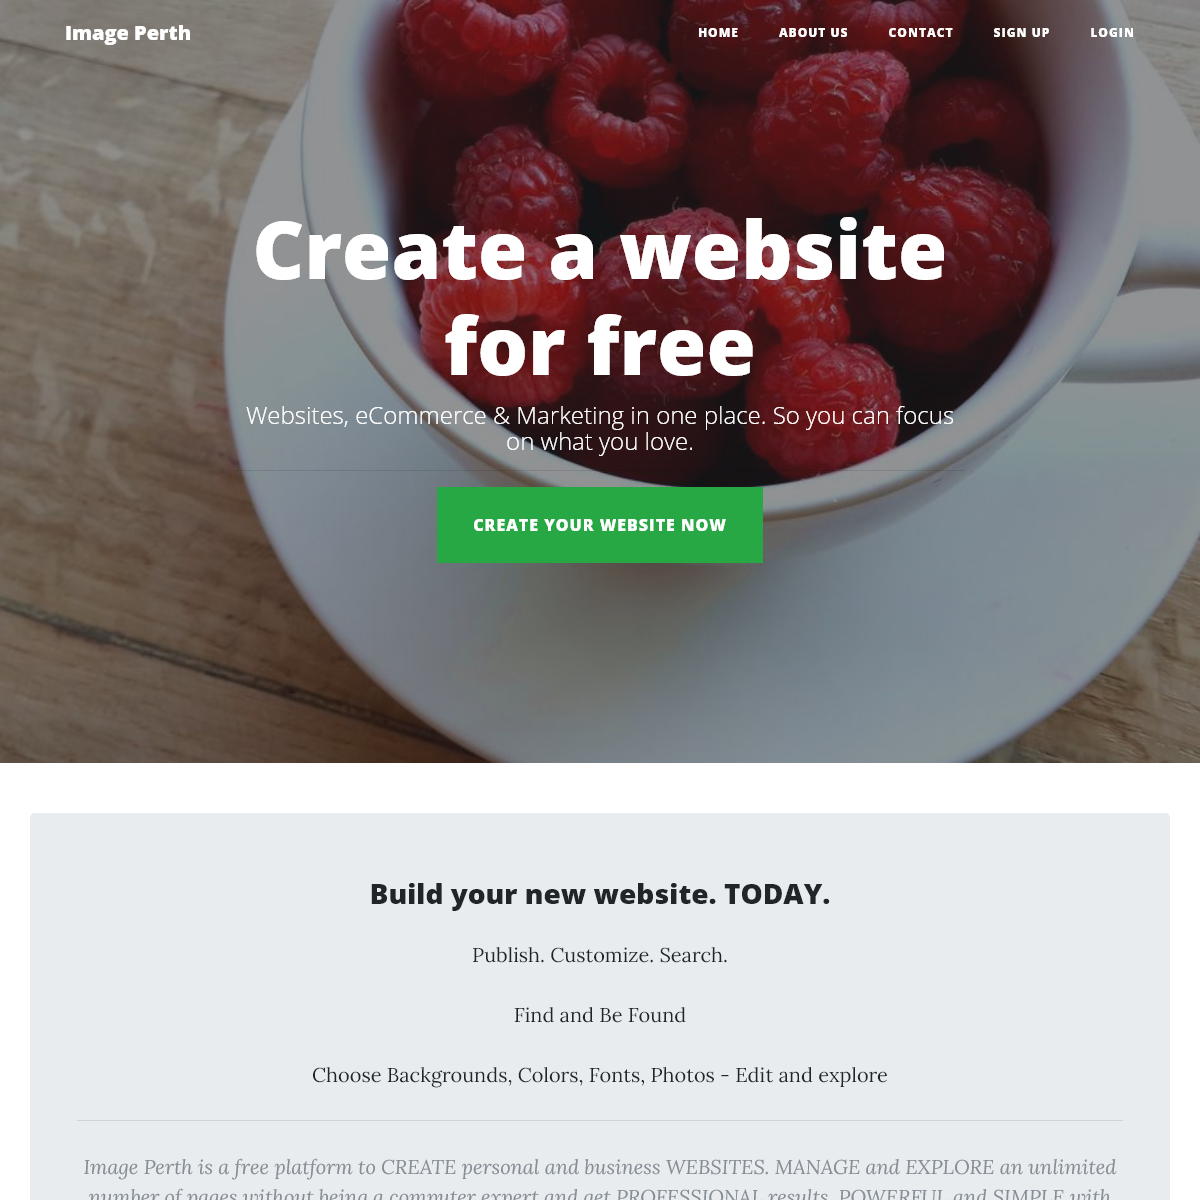 Create a website for free - Image Perth